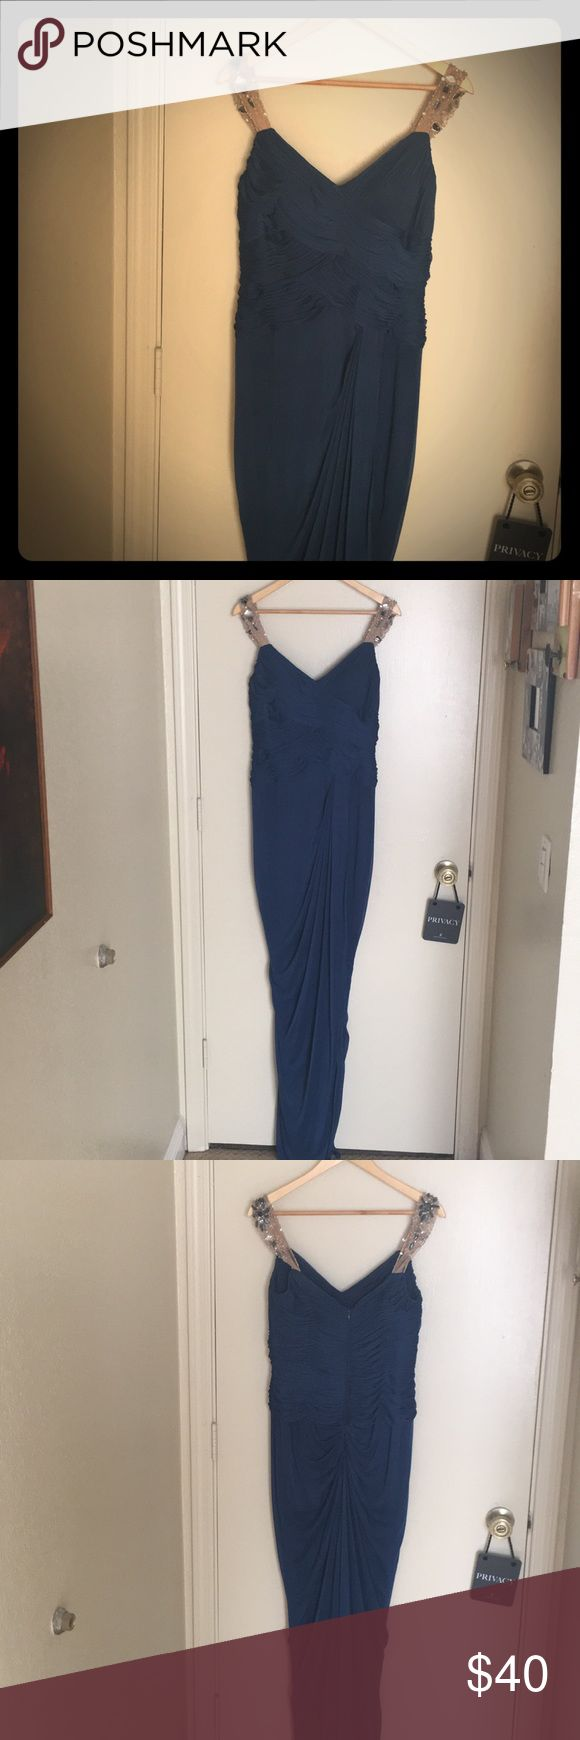 Navy blue Adrianna Papell Evening Gown size 10 Worn once, this navy gown with jeweled sleeves is absolutely a stunner! It is a size 10, and hugs curves in all the right place! Adrianna Papell Dresses